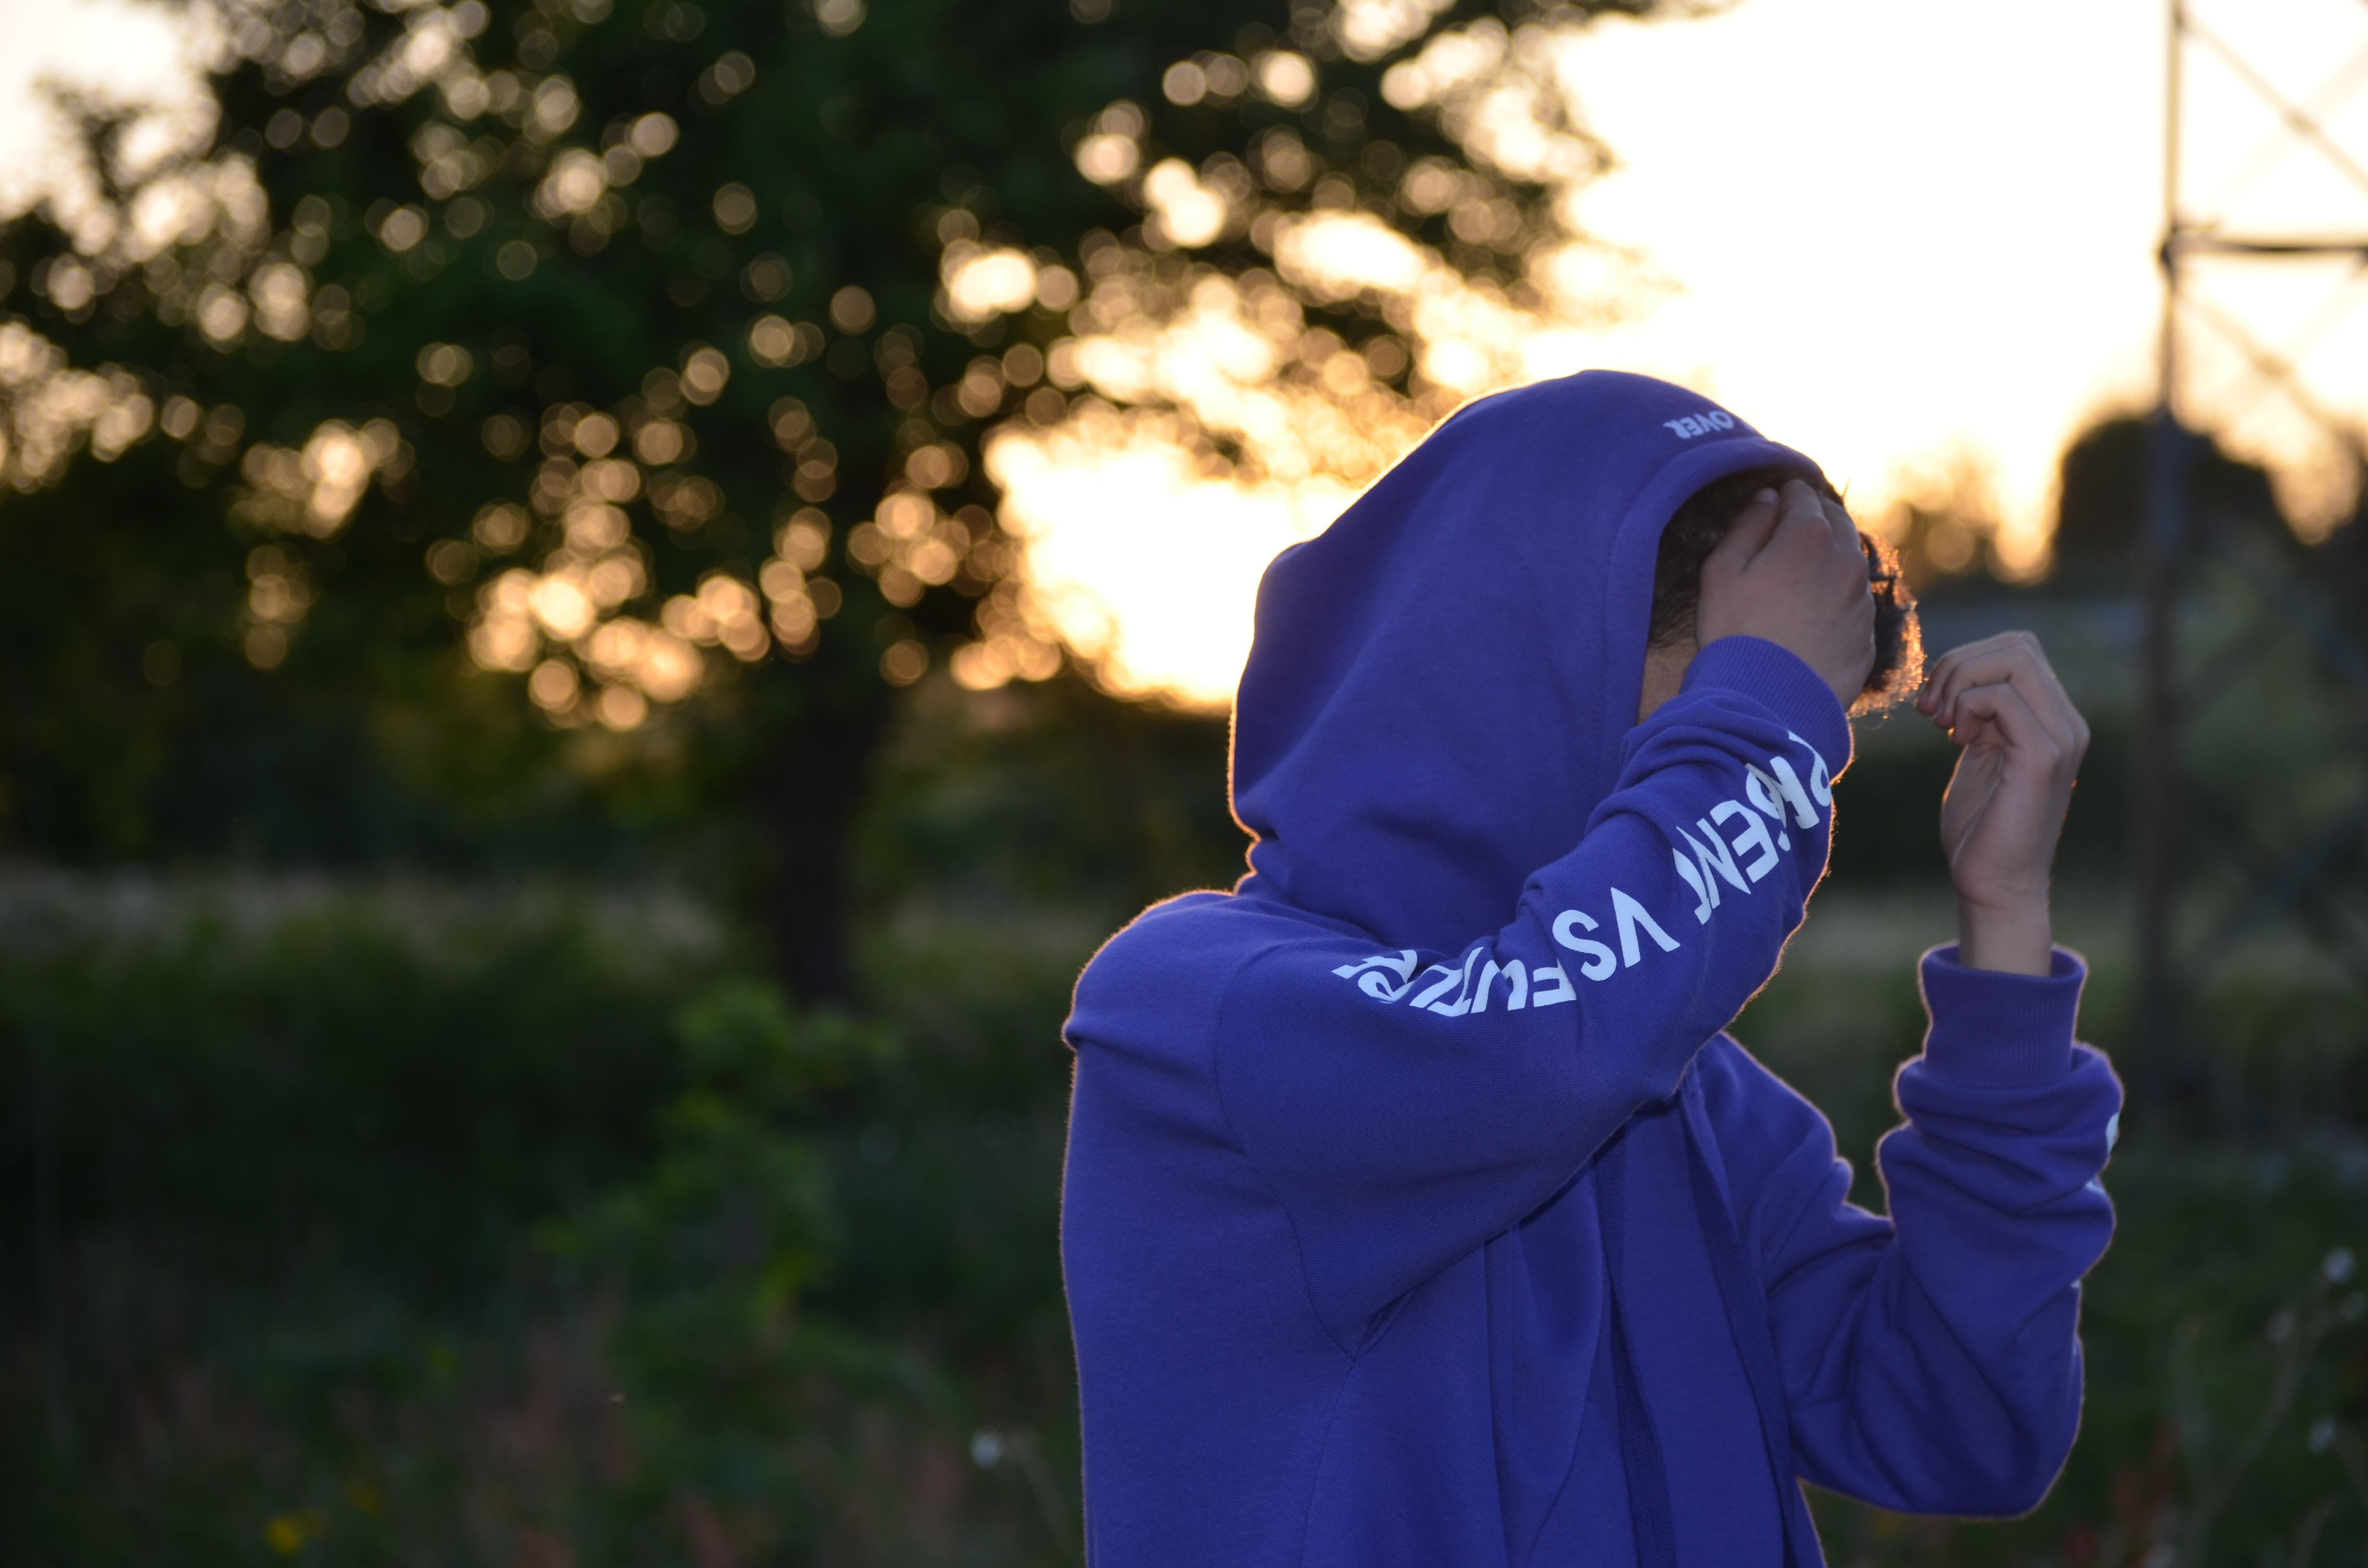 Shallow Focus Photo of Man in Blue Hoodie